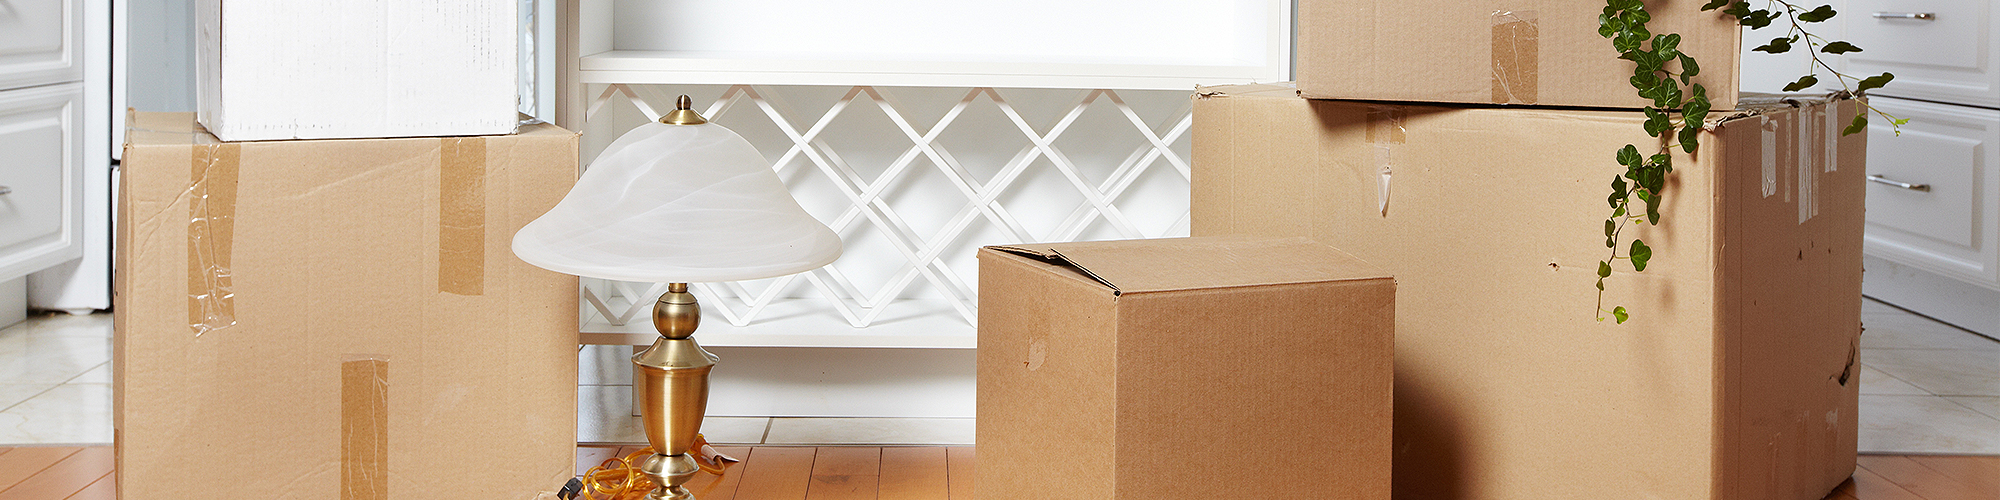 Packing and Unpacking Services in Charlotte, NC